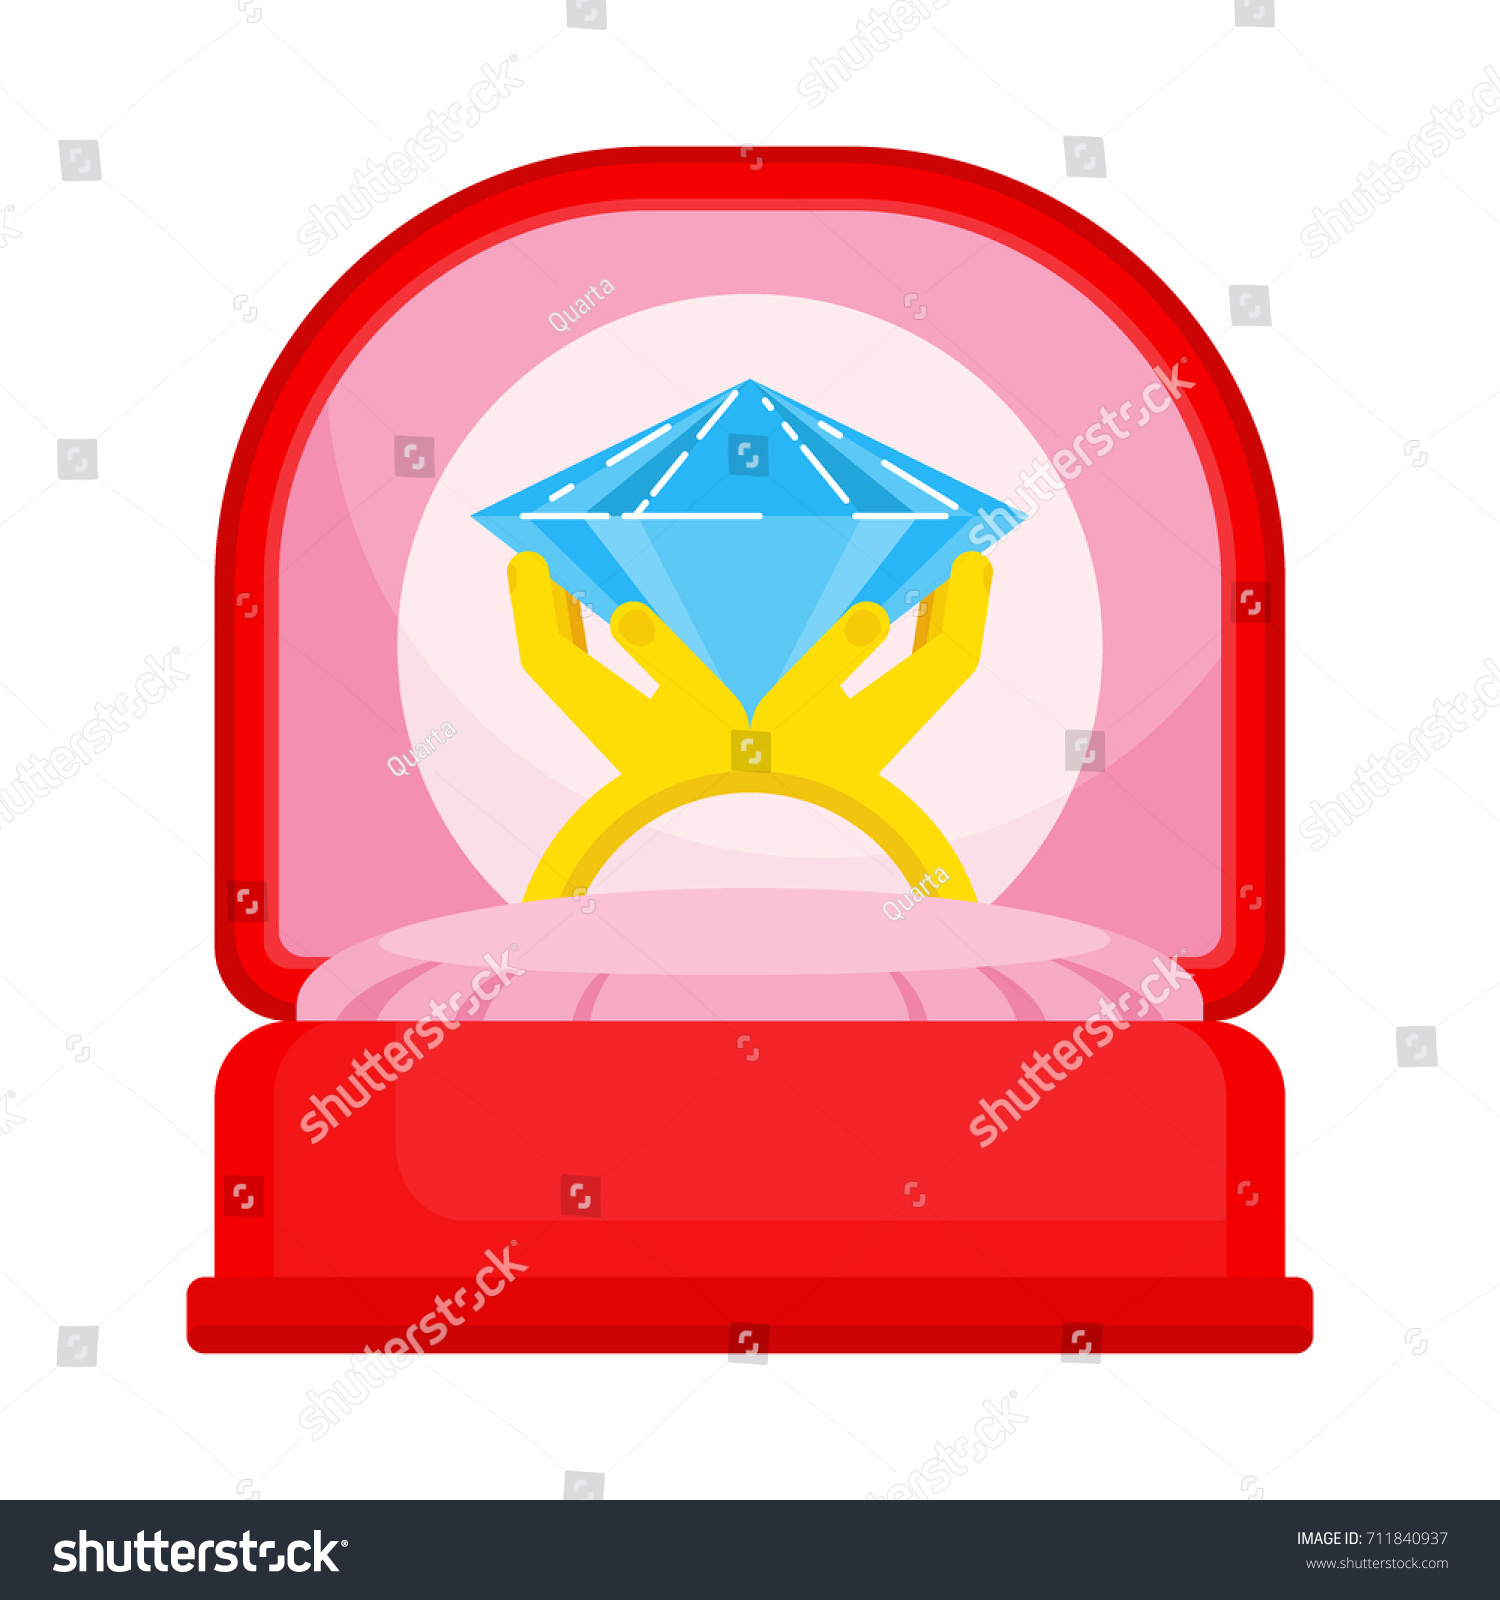 Ring Red Box Flat Vector Isolated Stock Vector 711840937 - Shutterstock